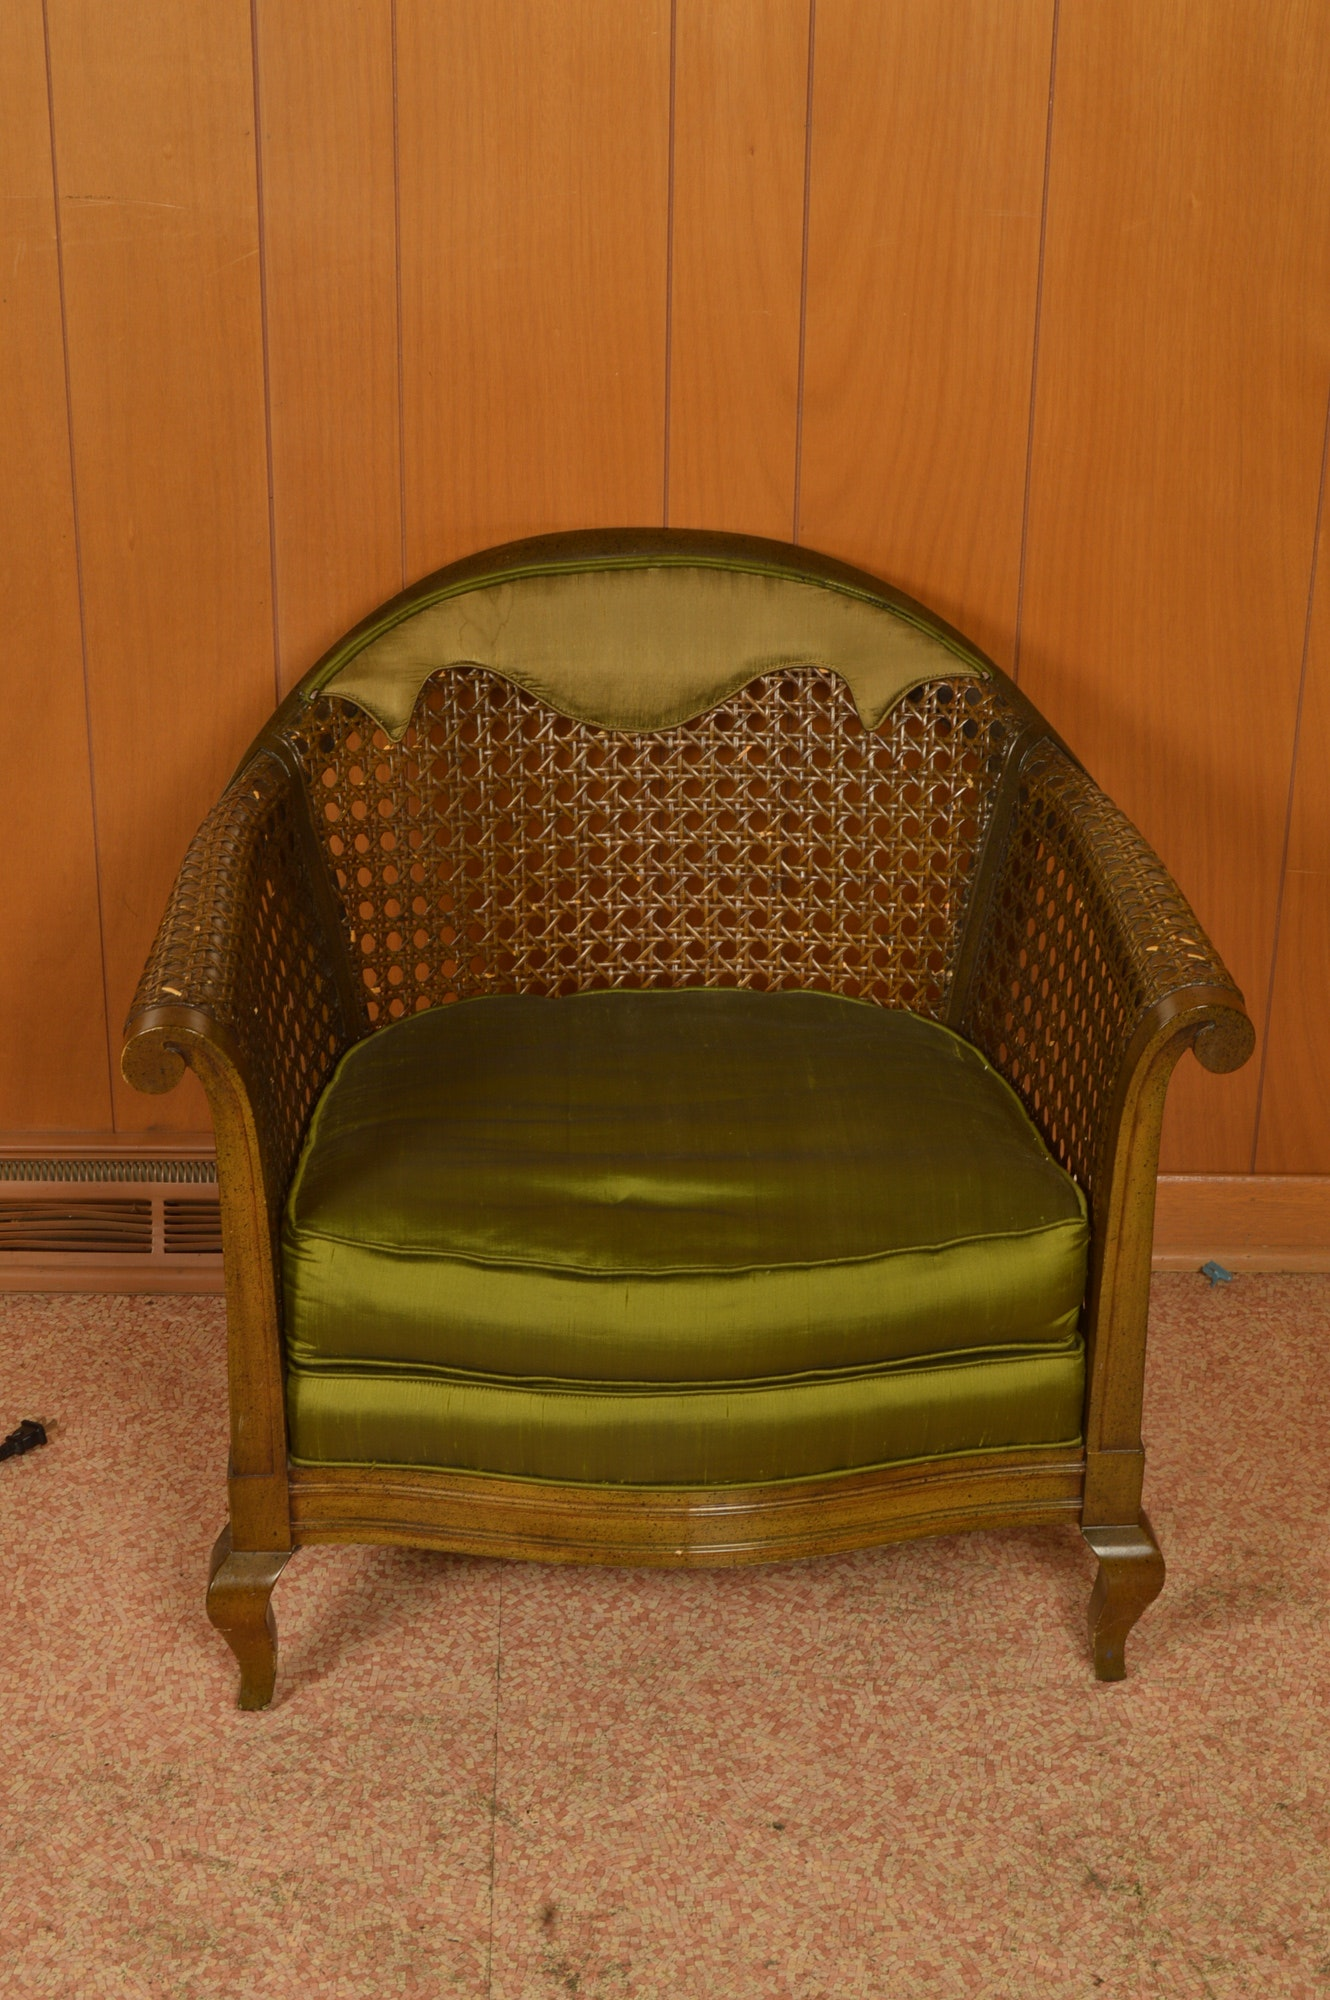 Vintage Cane-Backed Barrel Chair by Jerry Bear